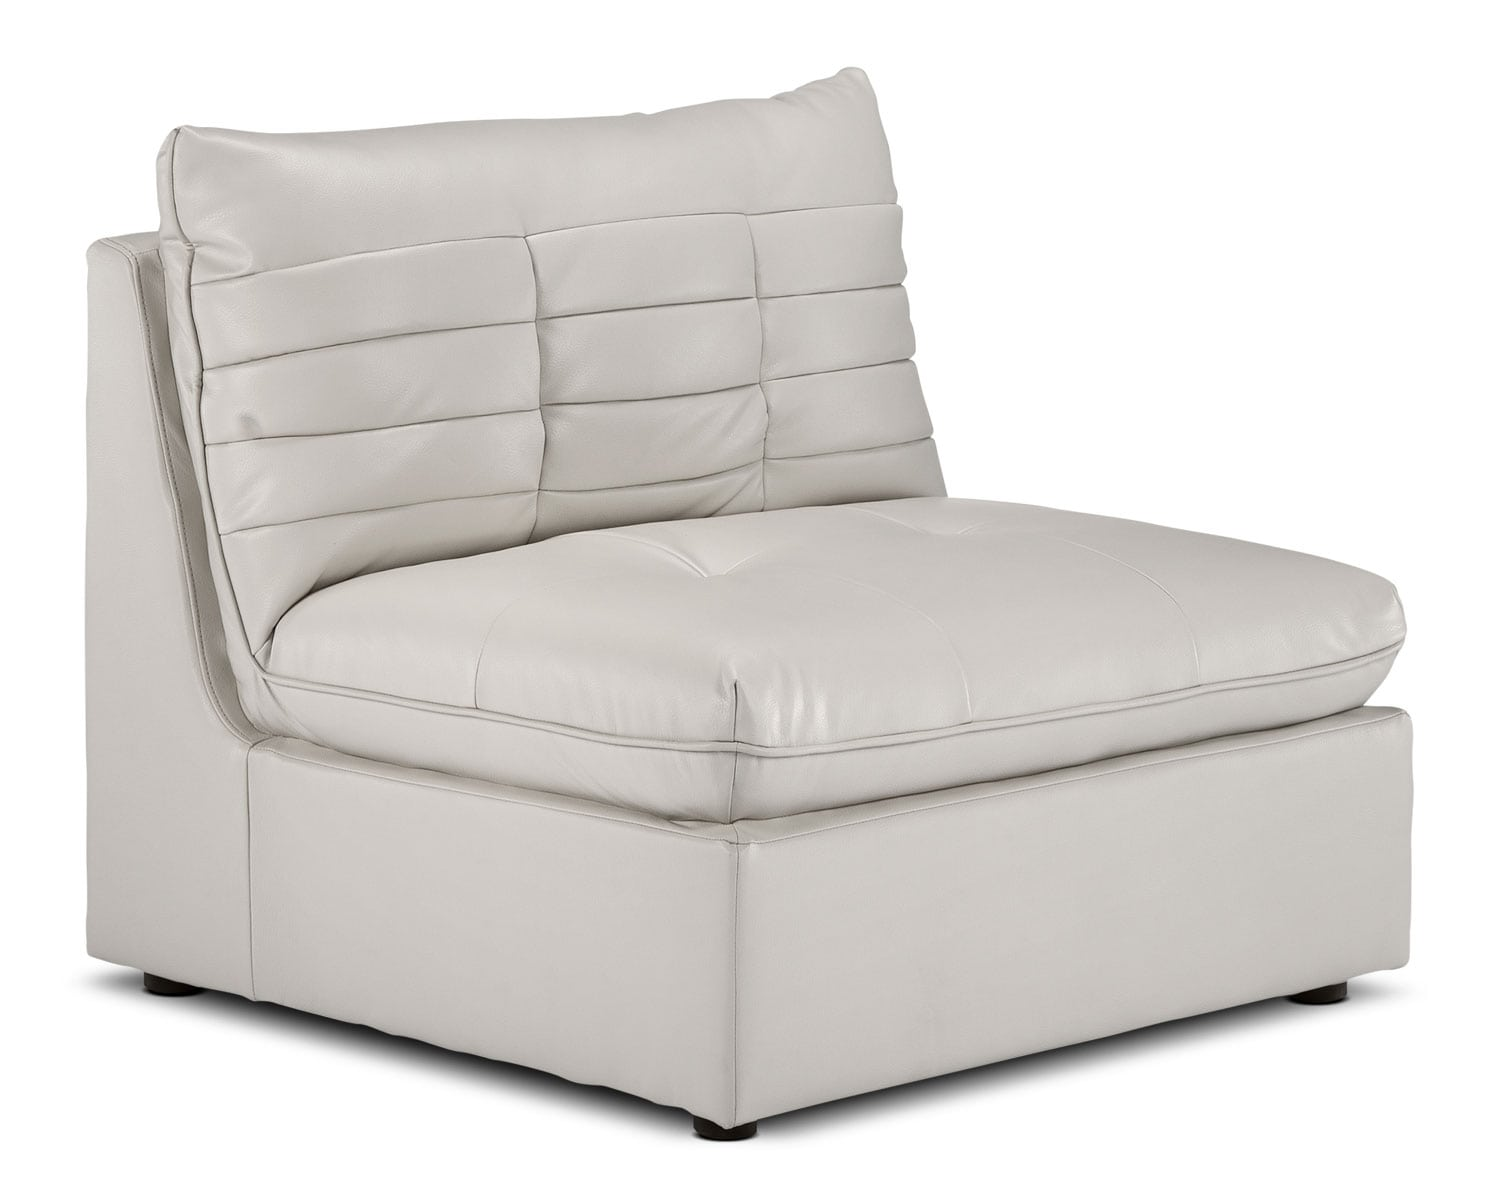 Living Room Furniture - Cortina Armless Chair